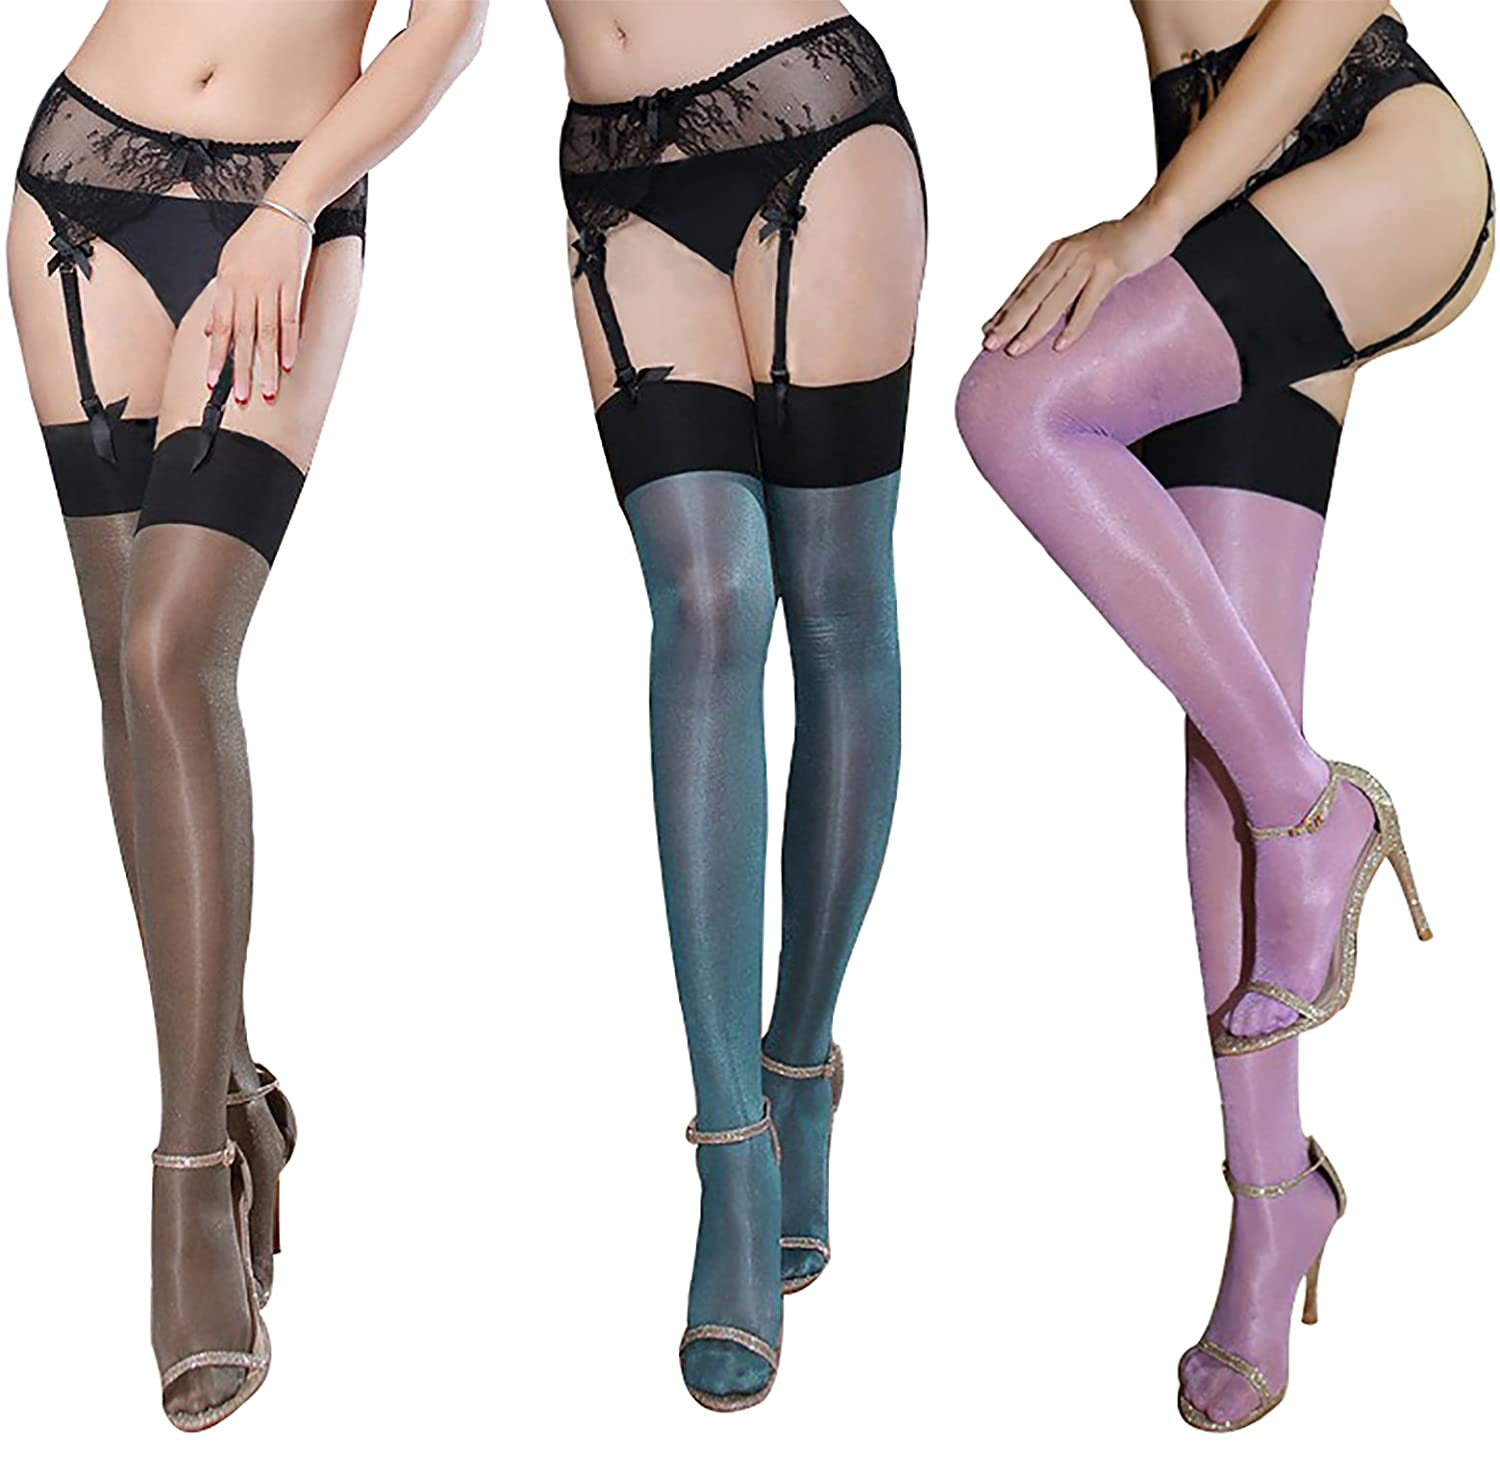 0908 ultra thin sheer thigh high rib top stockings